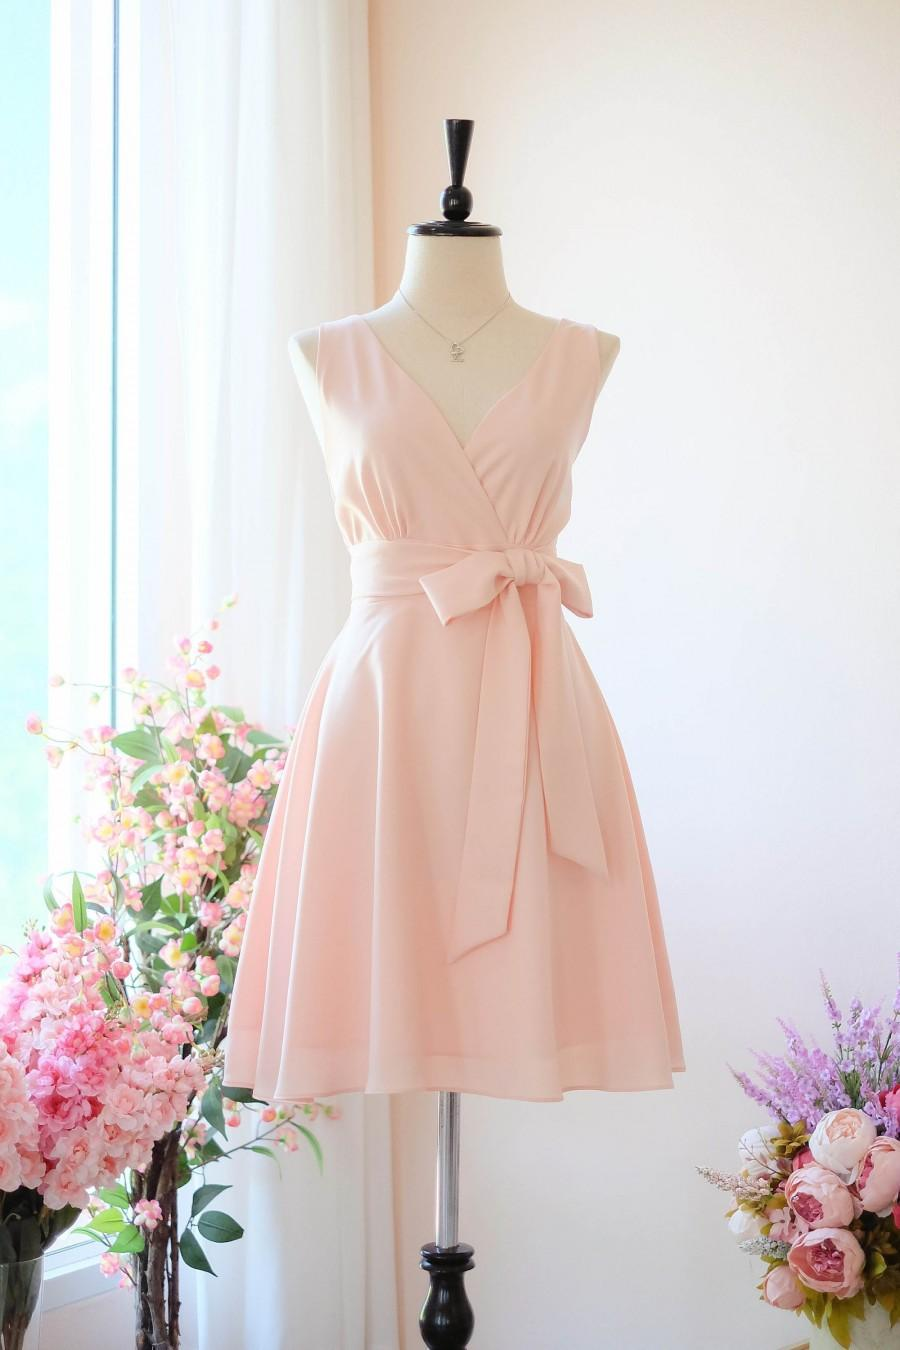 Pink Blush Dress Pink Bridesmaid Dress Vintage Prom Dress Pink Party Dress Wedding Guest Dress Summer Sundress Autumn Dress Casual Dress 2888744 Weddbook,Gulabi Night Wedding Dress